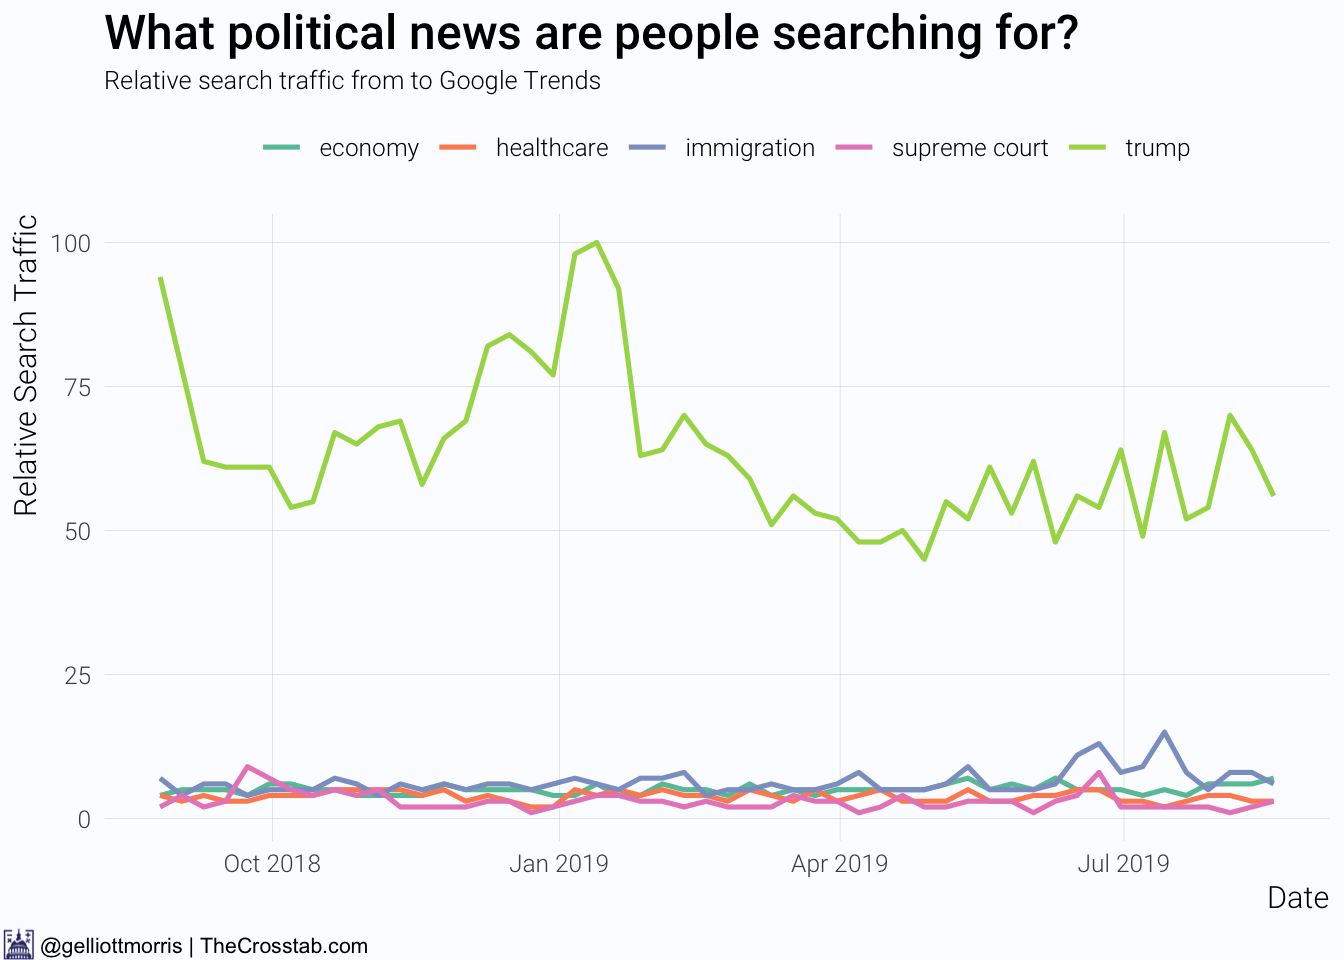 Plotting search interest for certain key news topics and Donald Trump